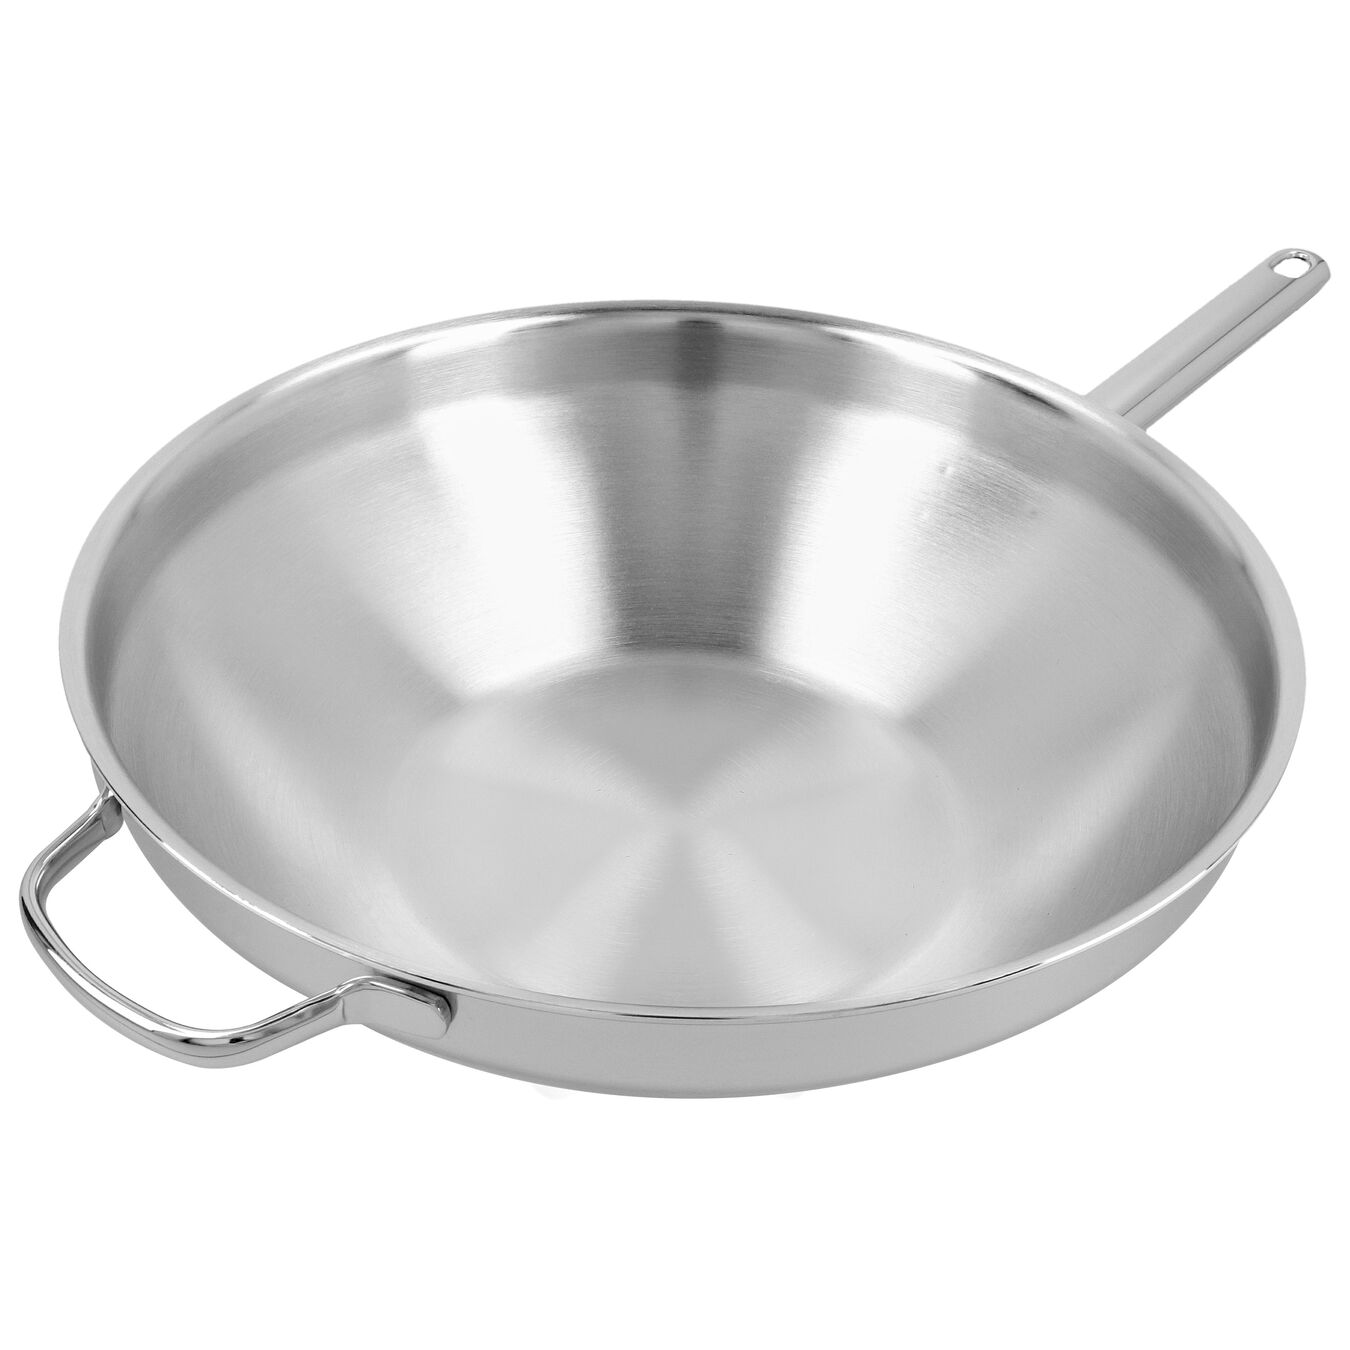 32 cm / 12.5 inch 18/10 Stainless Steel Wok without lid,,large 3